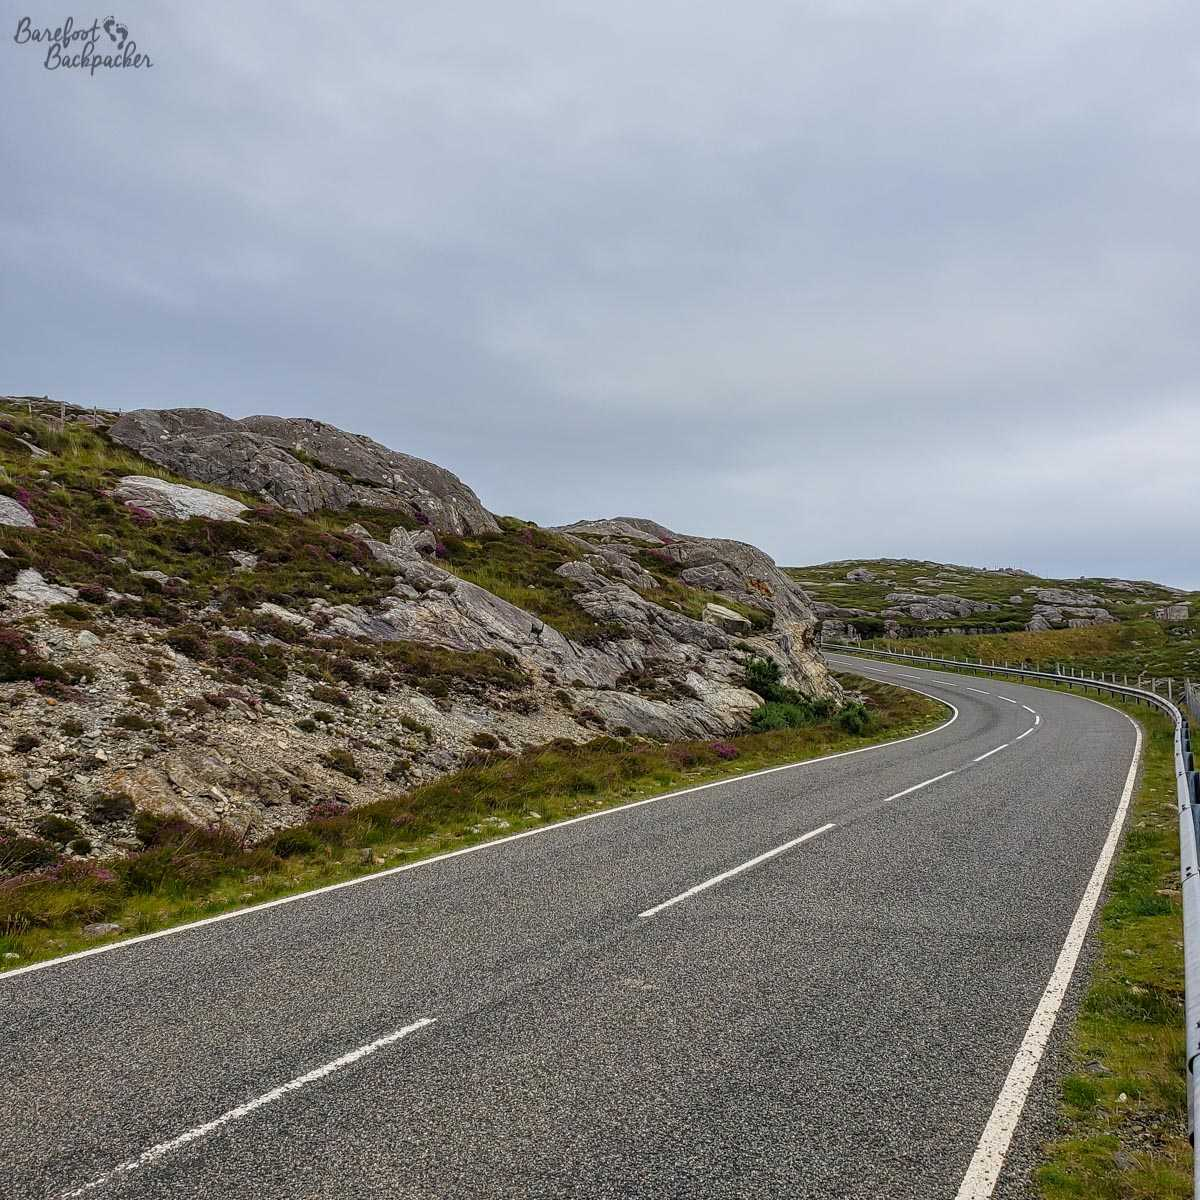 Road in Harris going through a landscape of Lewisian Gneiss.